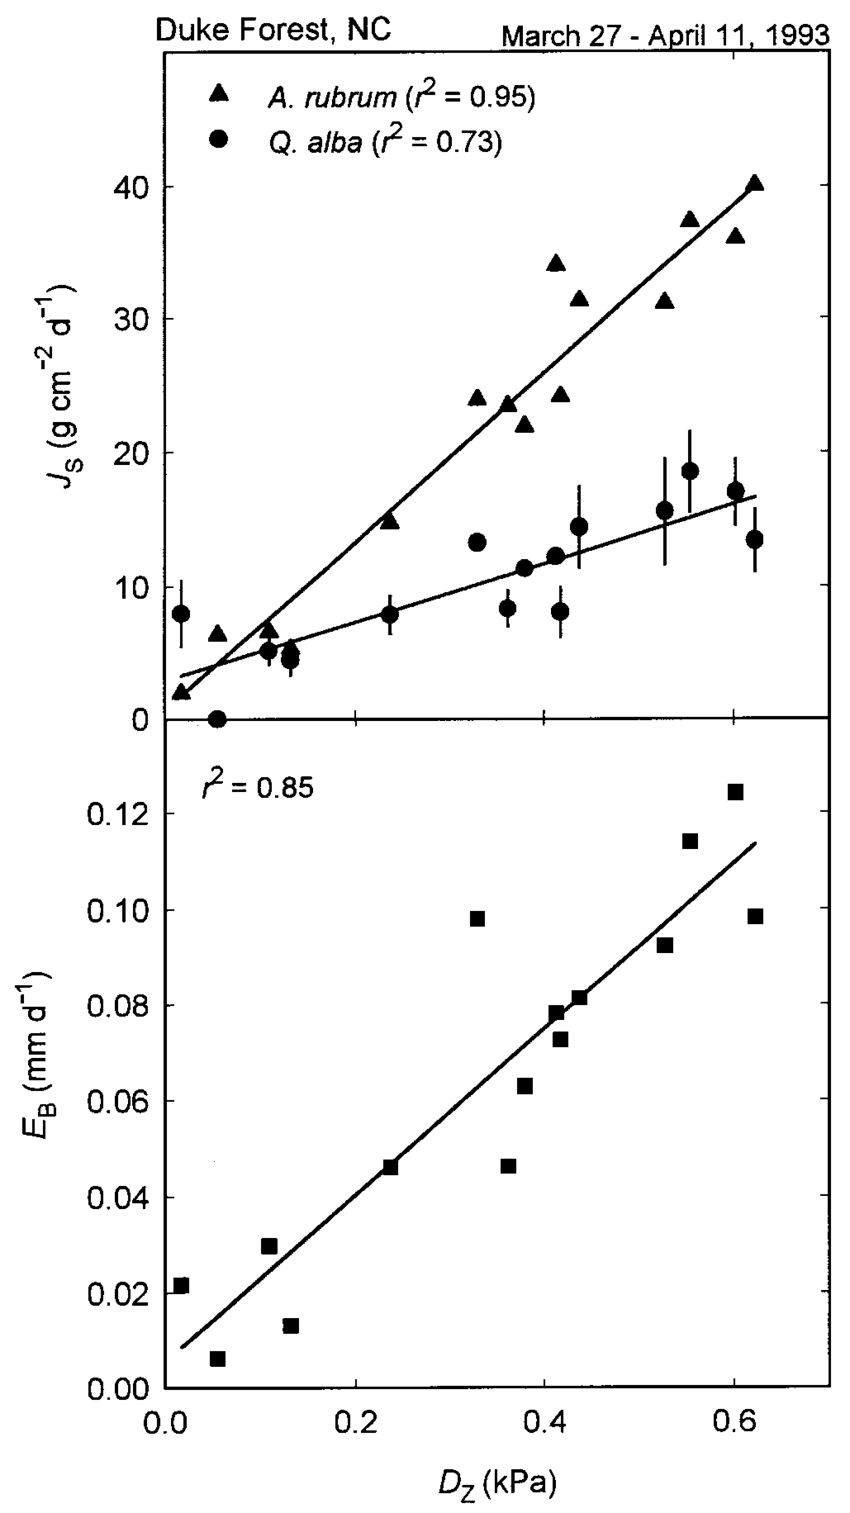 medium resolution of daily sap flux j s values for one individual of acer rubrum and download scientific diagram